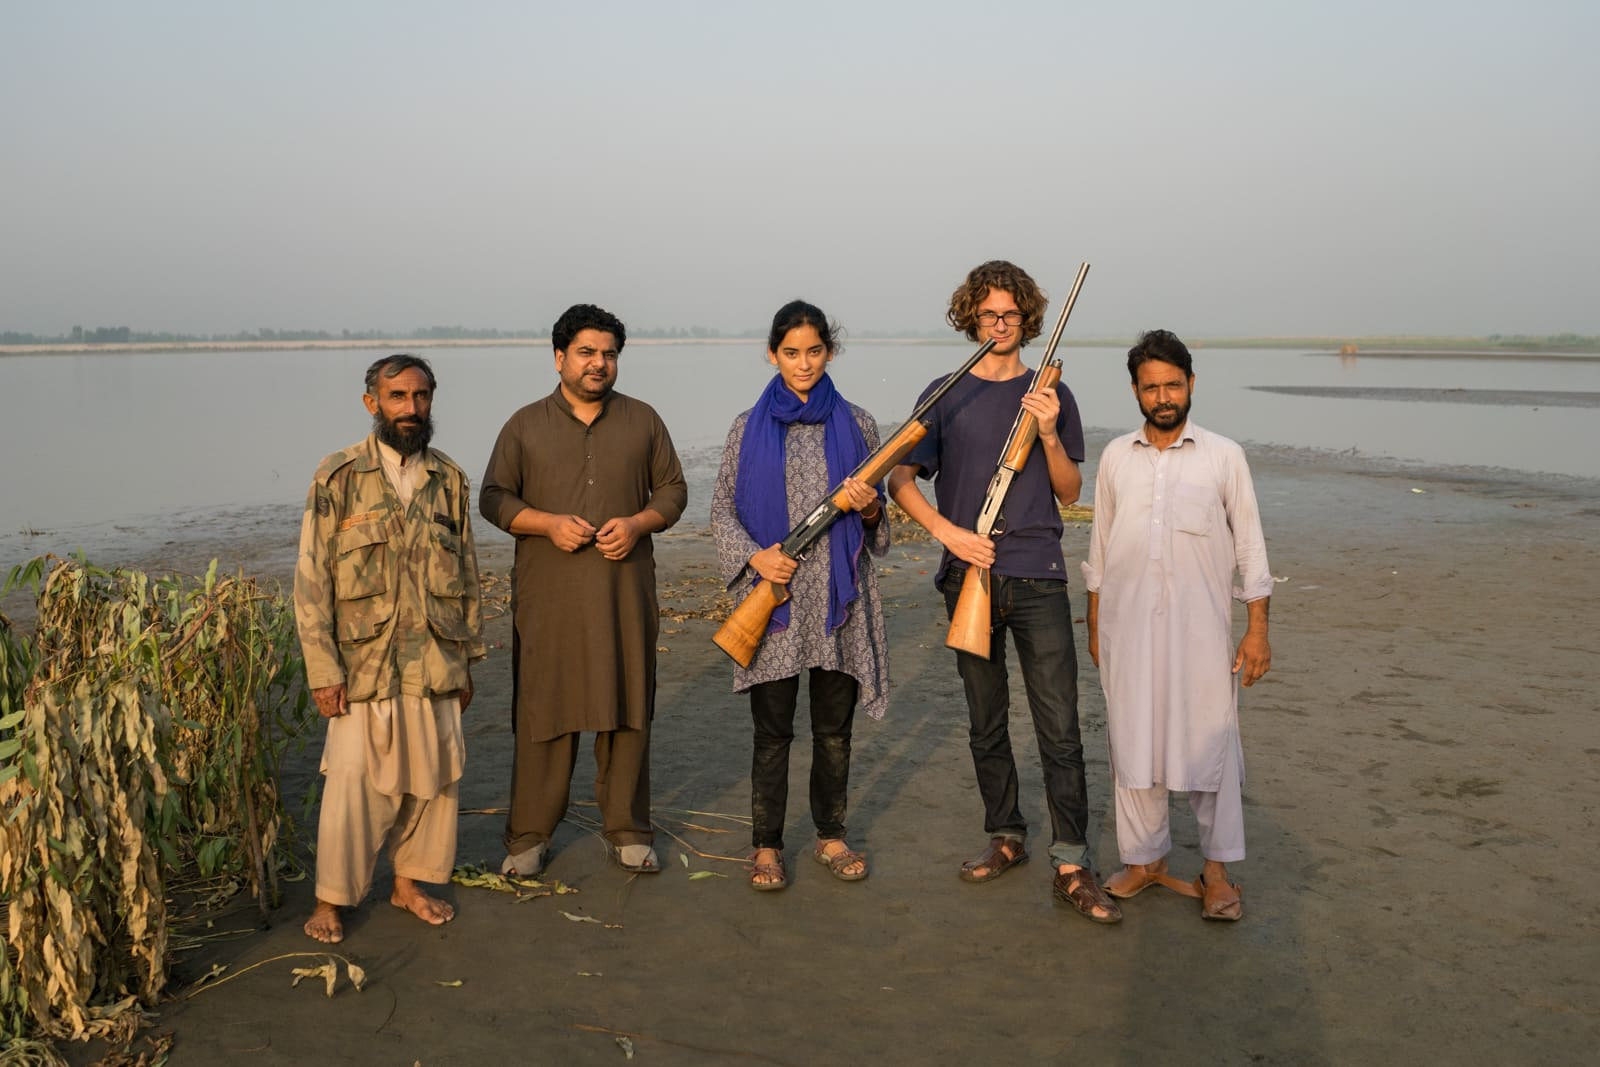 The hospitable Pashtuns of Peshawar, Pakistan - Squad of duck hunters on the Kabul river - Lost With Purpose travel blog